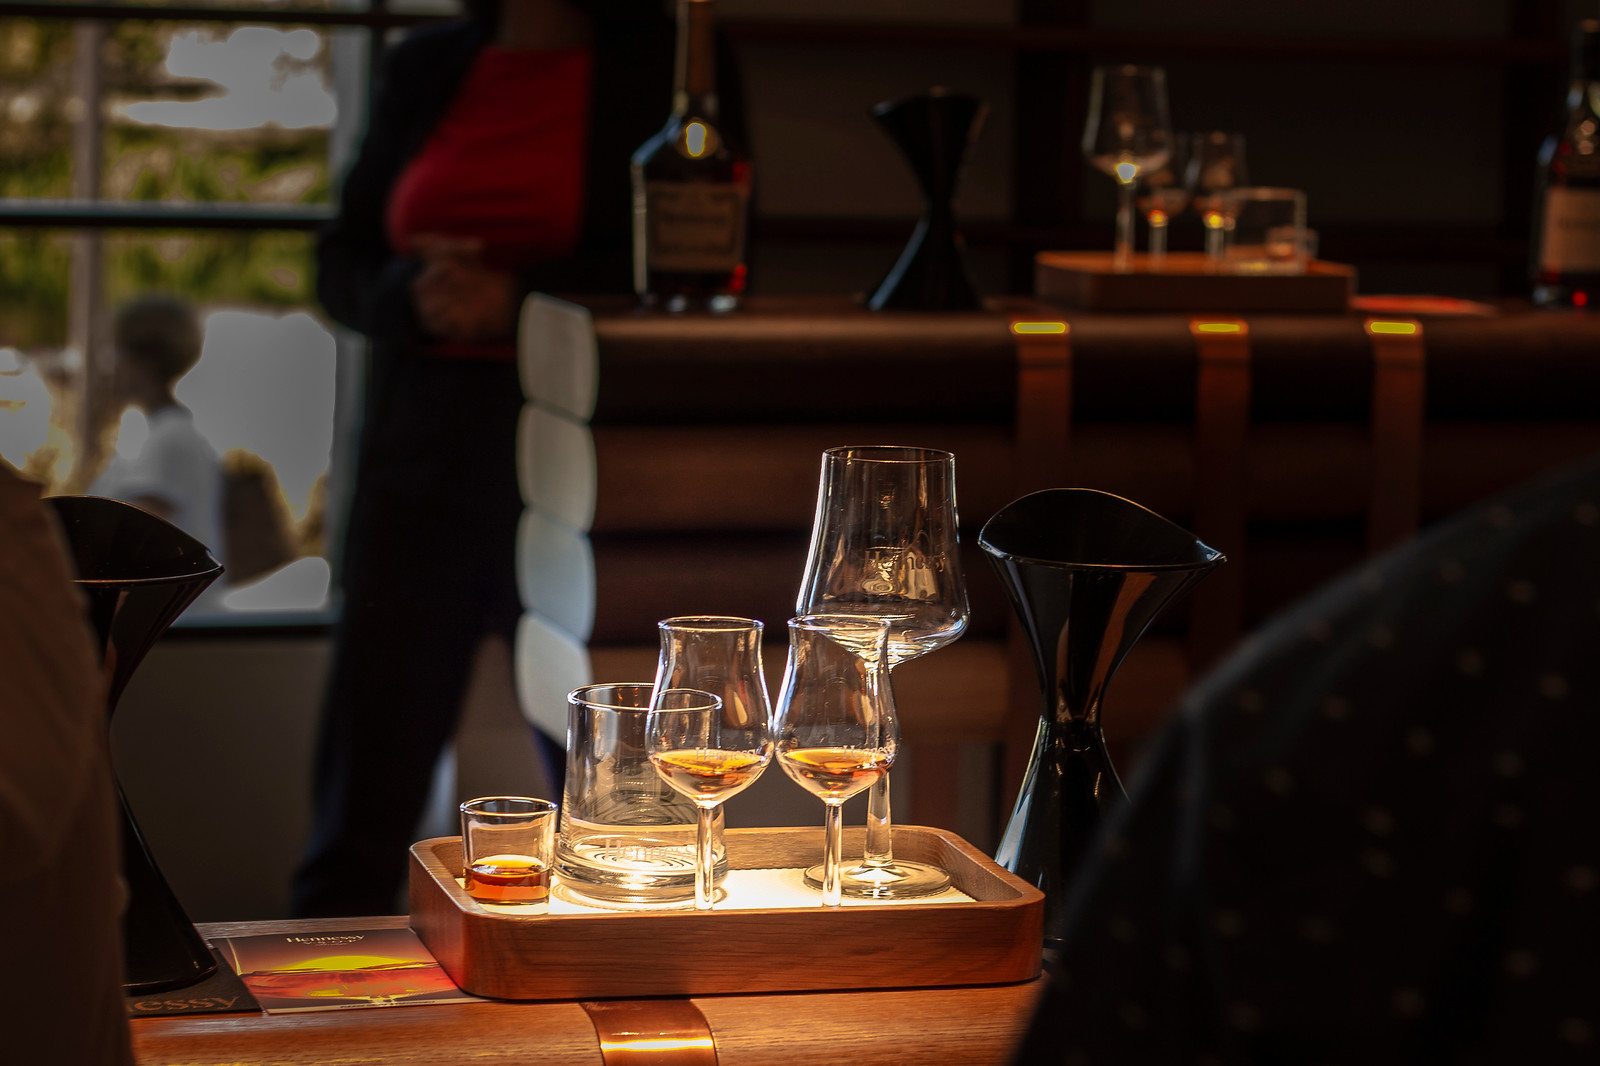 Hennessy tasting: 5 different glasses filled with cognac for tasting in a dimly surroundings